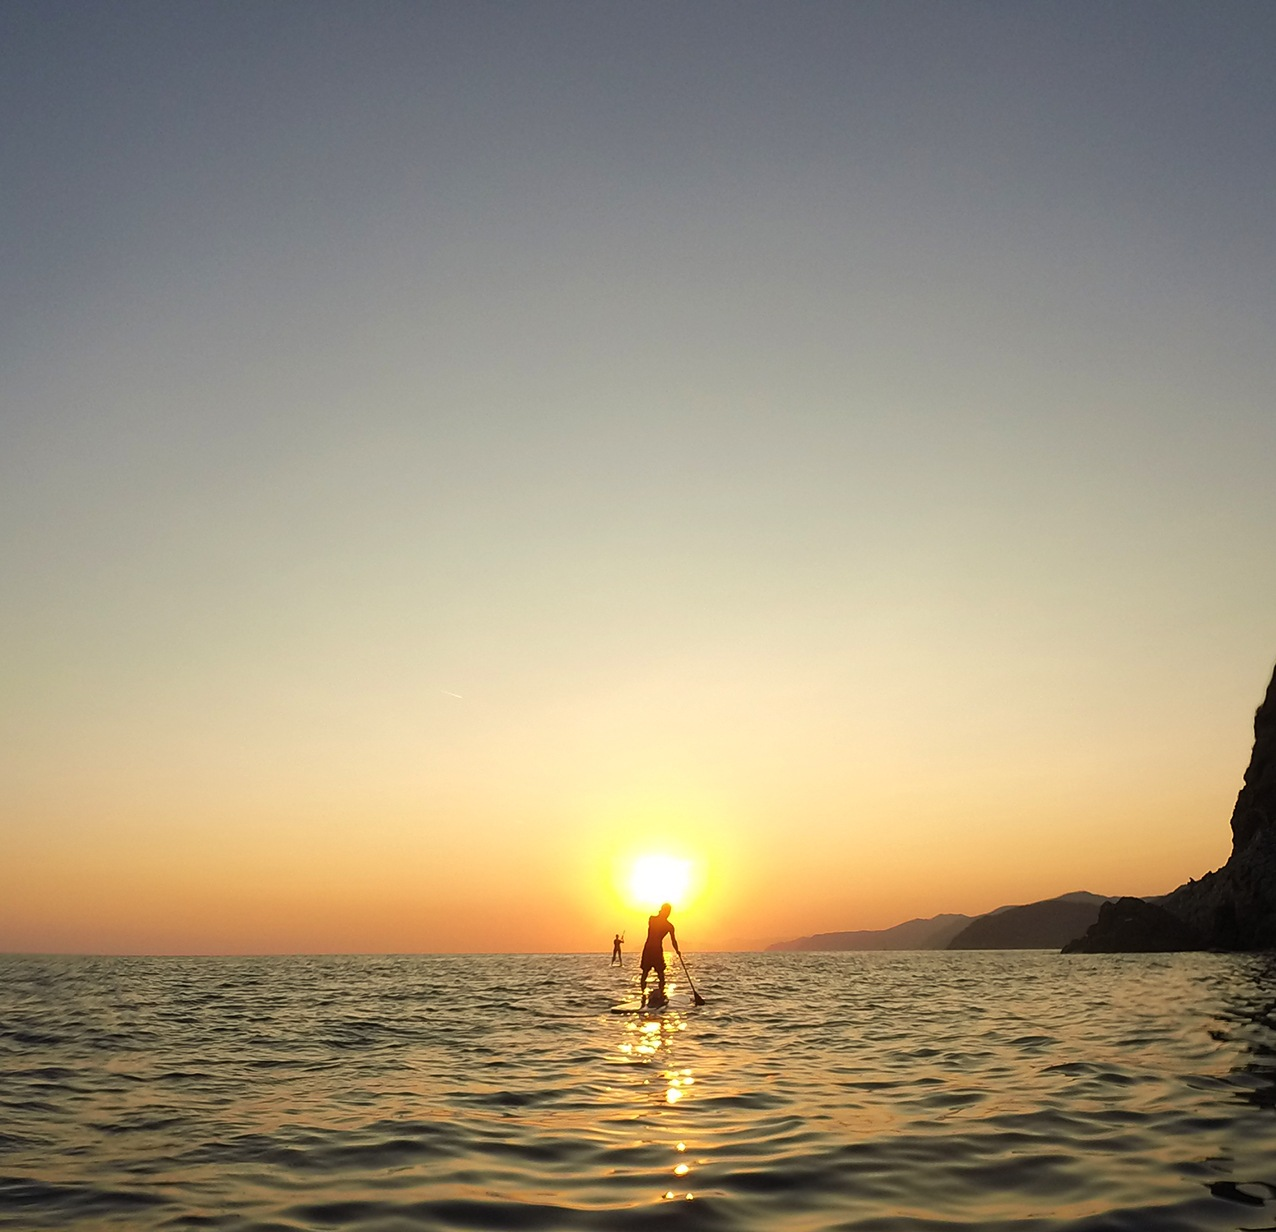 sunset paddle boarding levanto